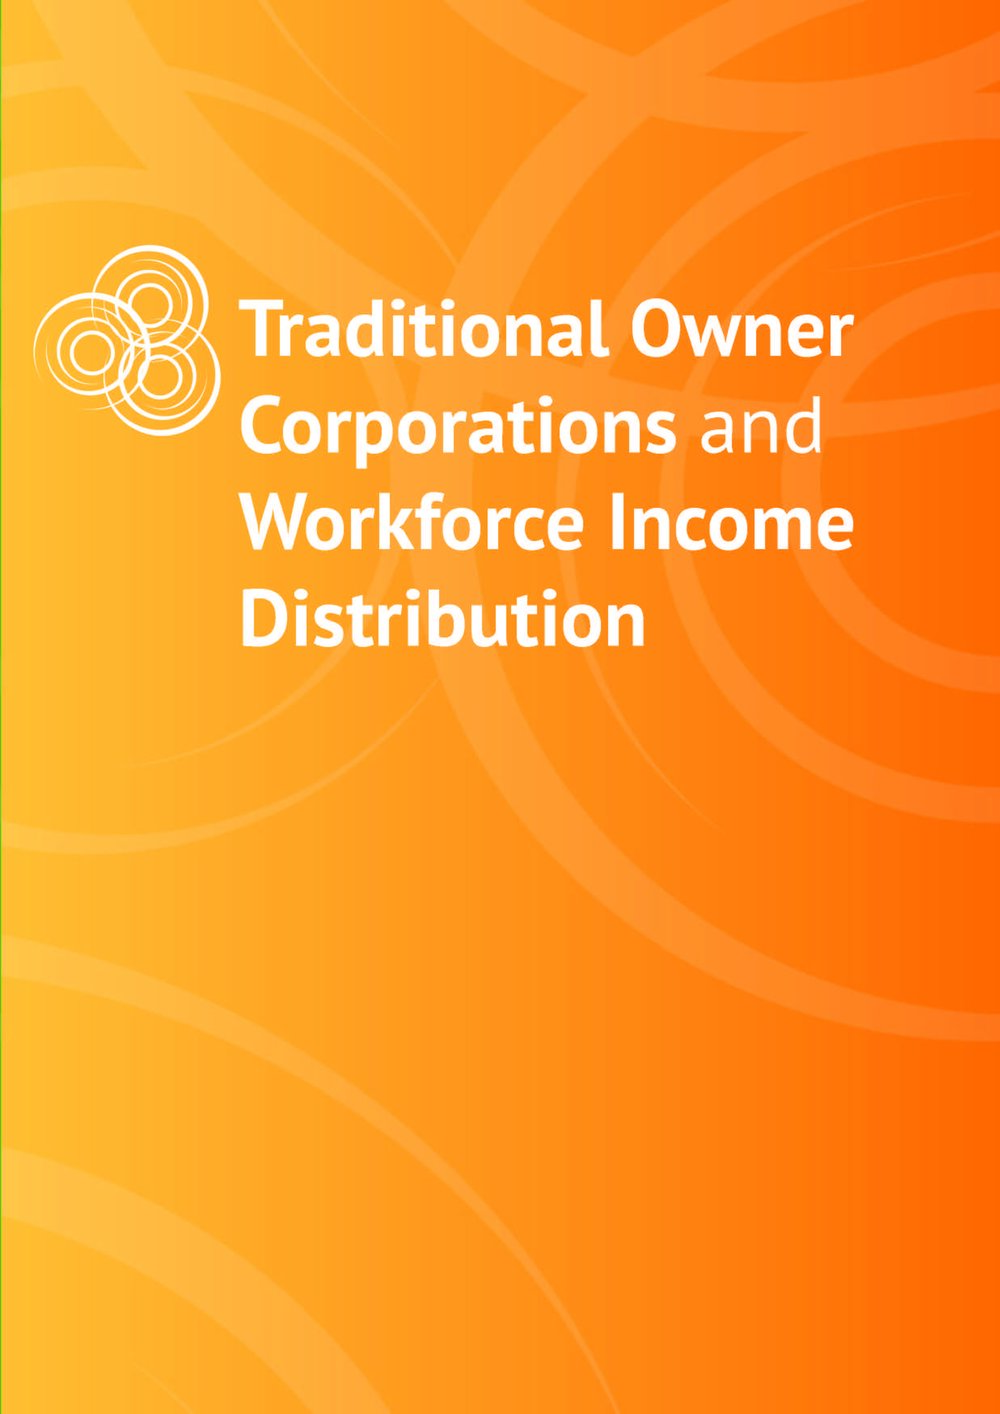 Workforce Income Distribution